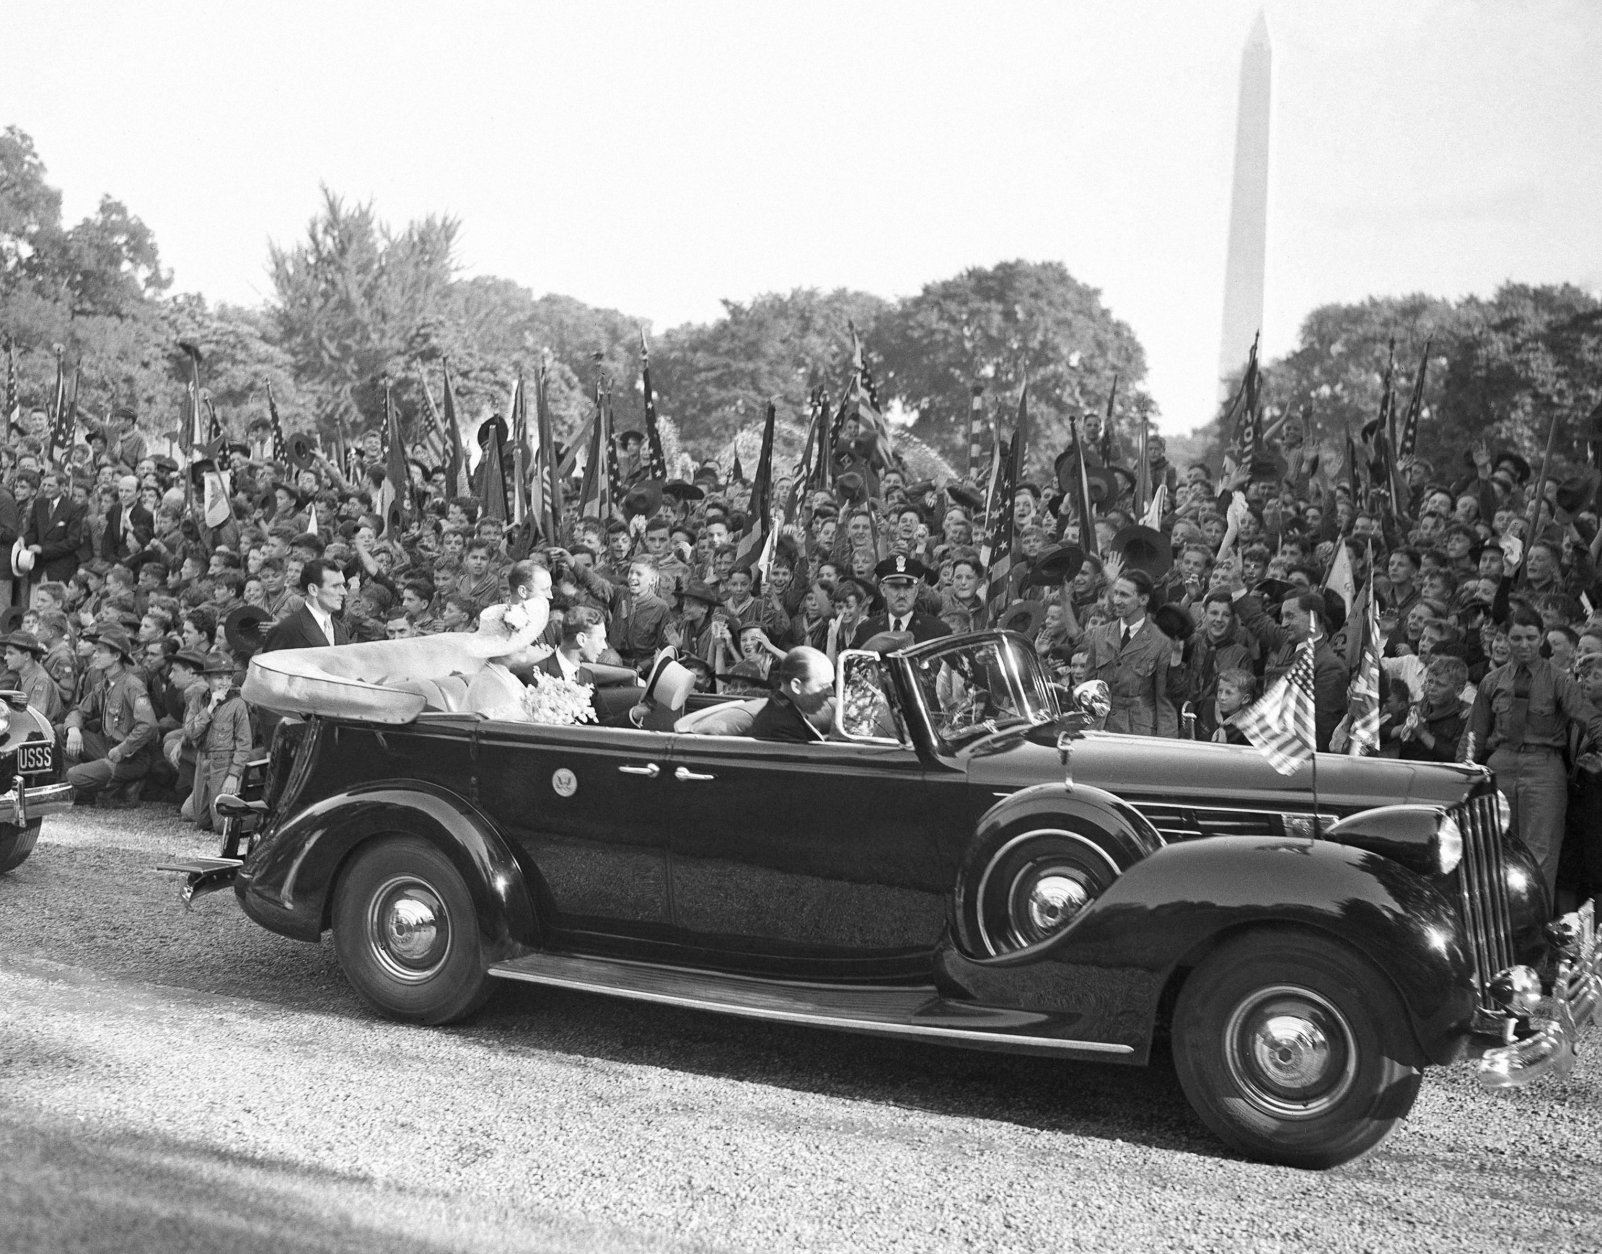 Throng of Boy Scouts cheered the King and Queen of England when the foreign royalty reviewed the scouts at the White House in Washington, D.C., on June 8, 1939. The king and queen are in back of car driving by the waving youths. (AP Photo)